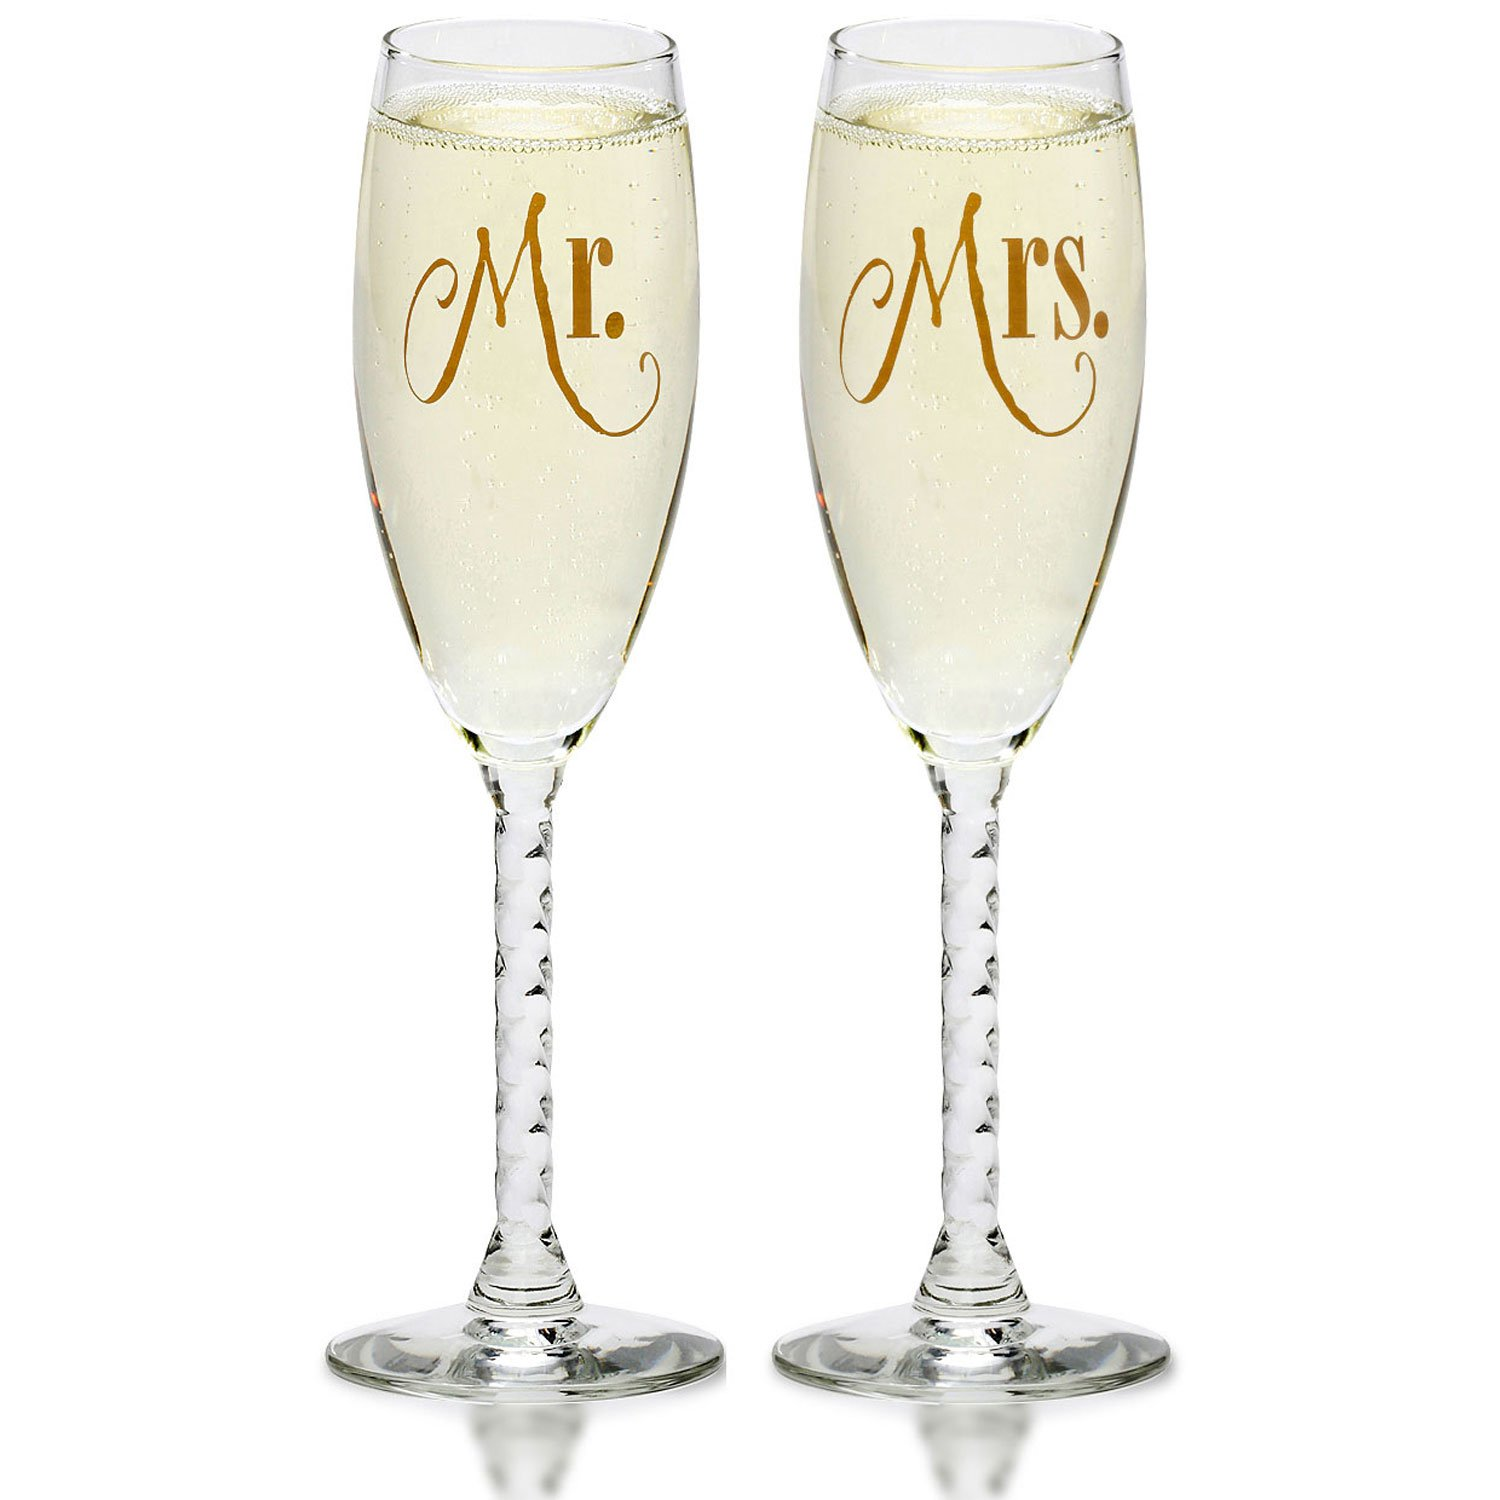 Mr. & Mrs. Gold Champagne Flutes - Wedding Glasses For Bride & Groom - Toasting Sets - For Couples - Engagement, Wedding, Anniversary, House Warming, Hostess Gift